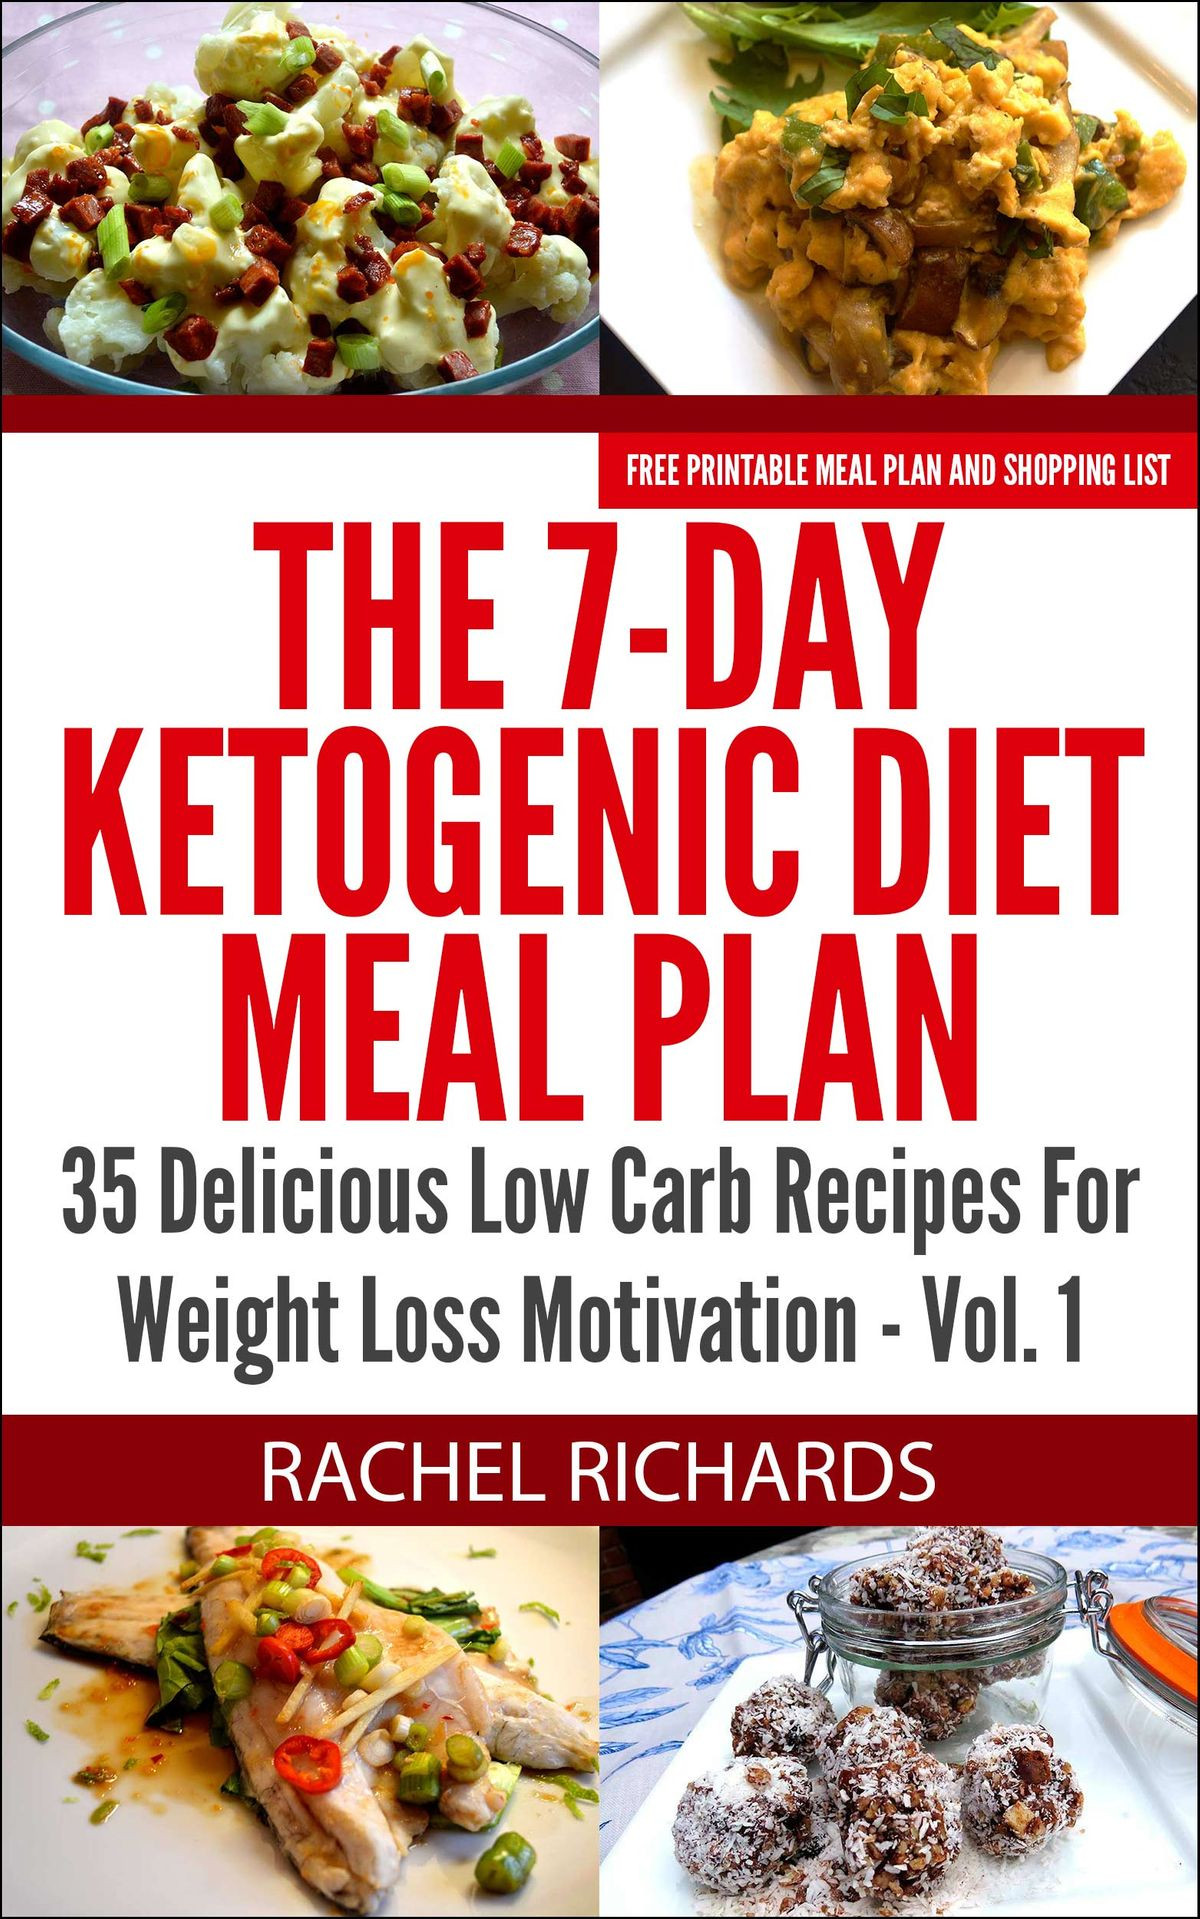 Low Carb Diet Recipes Losing Weight  The 7 Day Ketogenic Diet Meal Plan 35 Delicious Low Carb